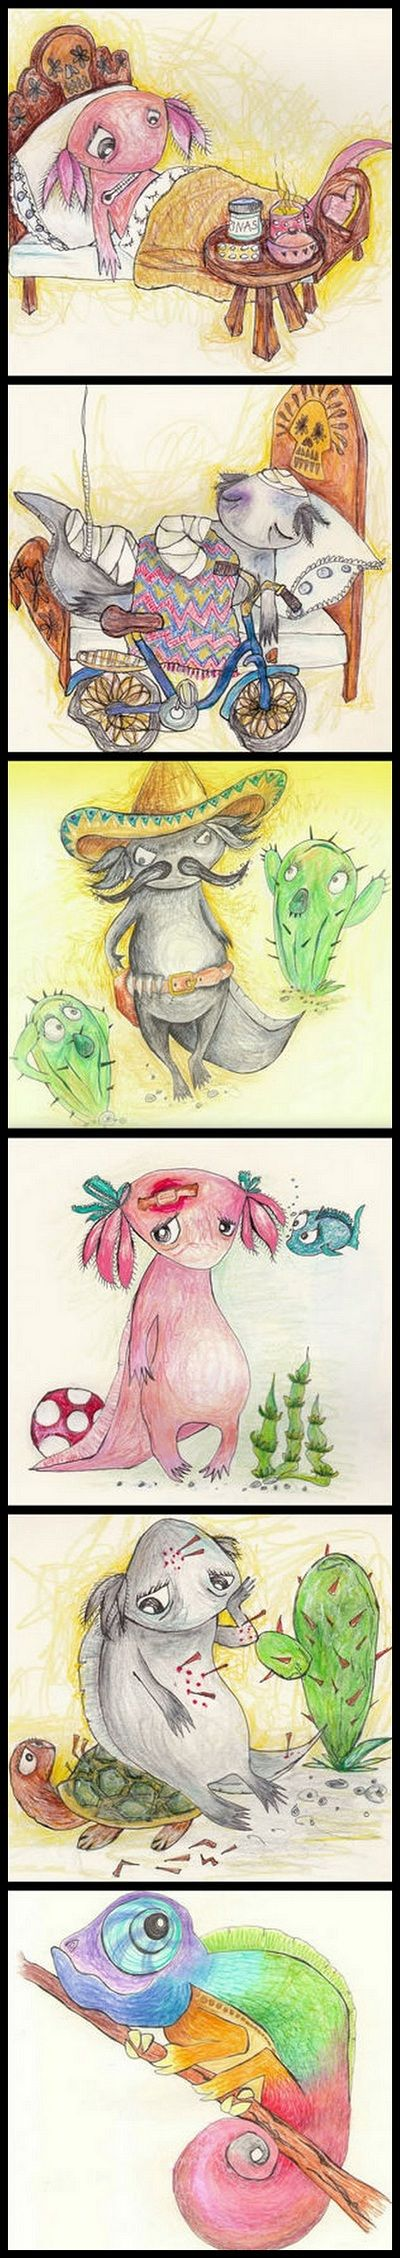 http://soiman.com/ Illustrations by Soimán #axolotl #maxico #cute #animal #cameleon #drawing